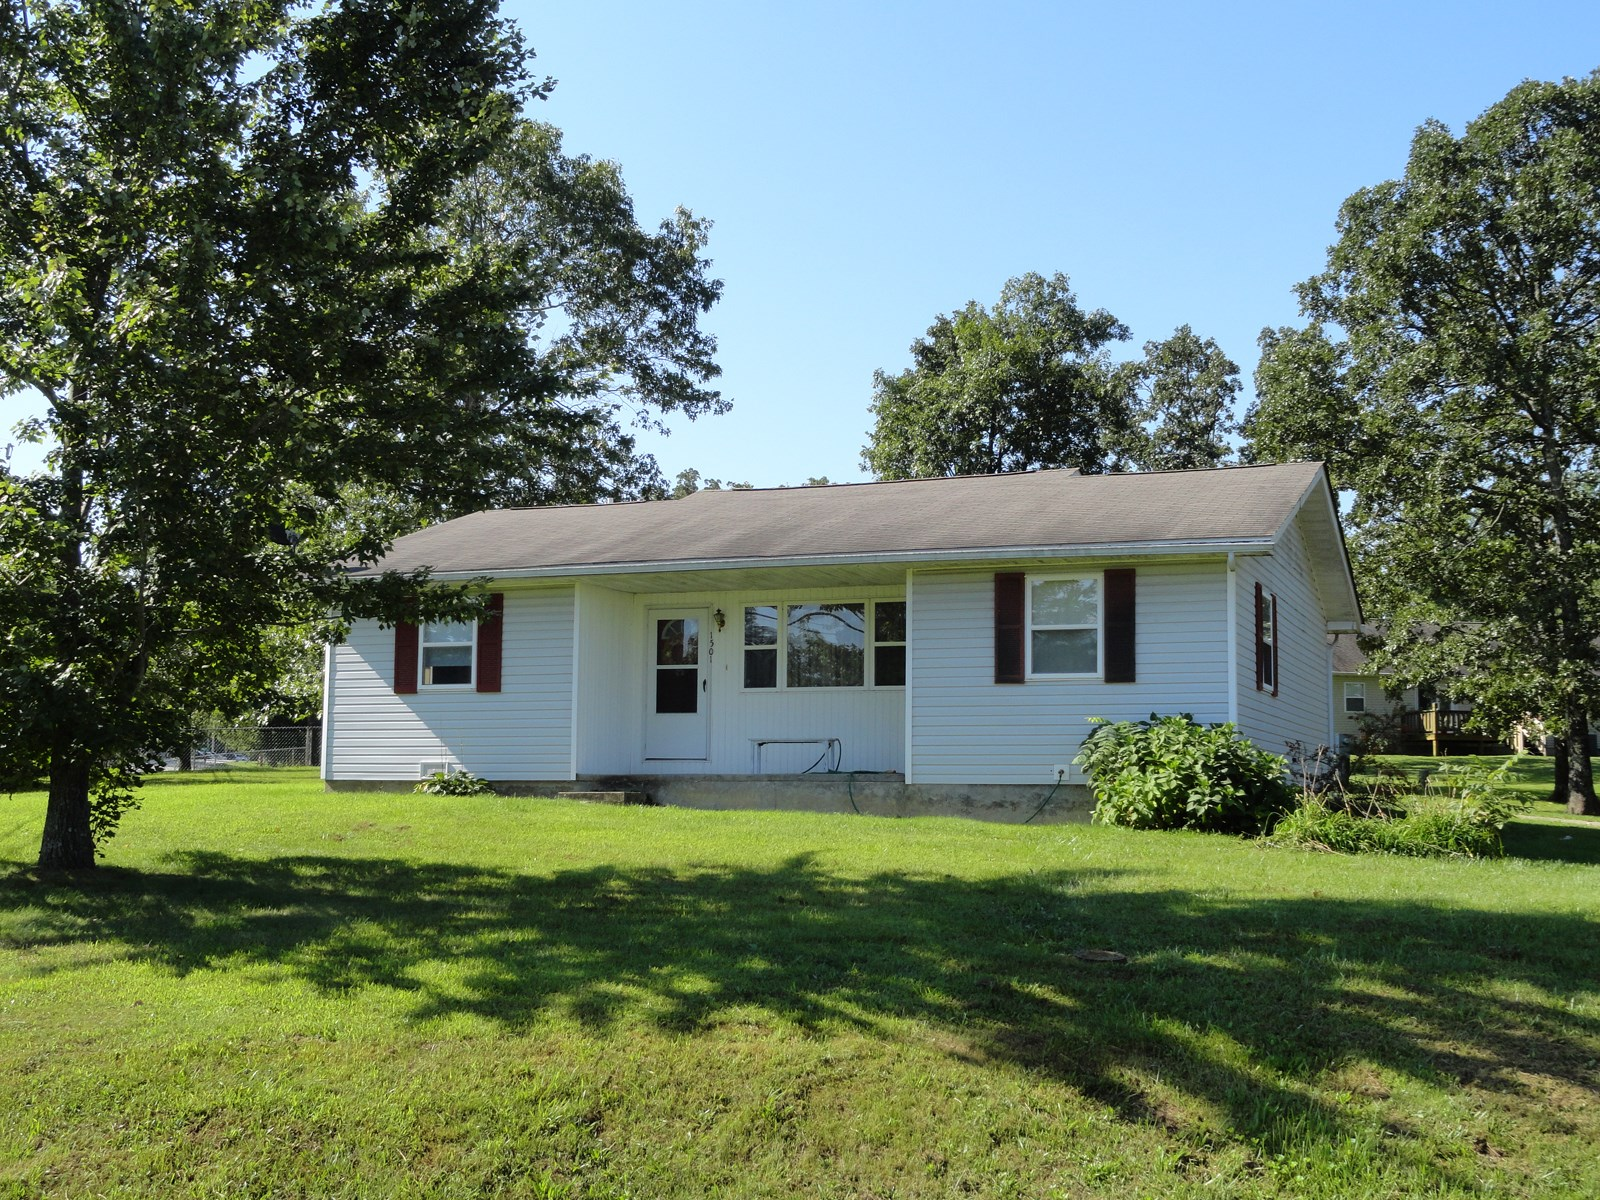 3 Bedroom, 2 Bath Ranch Home in Salem, MO!!